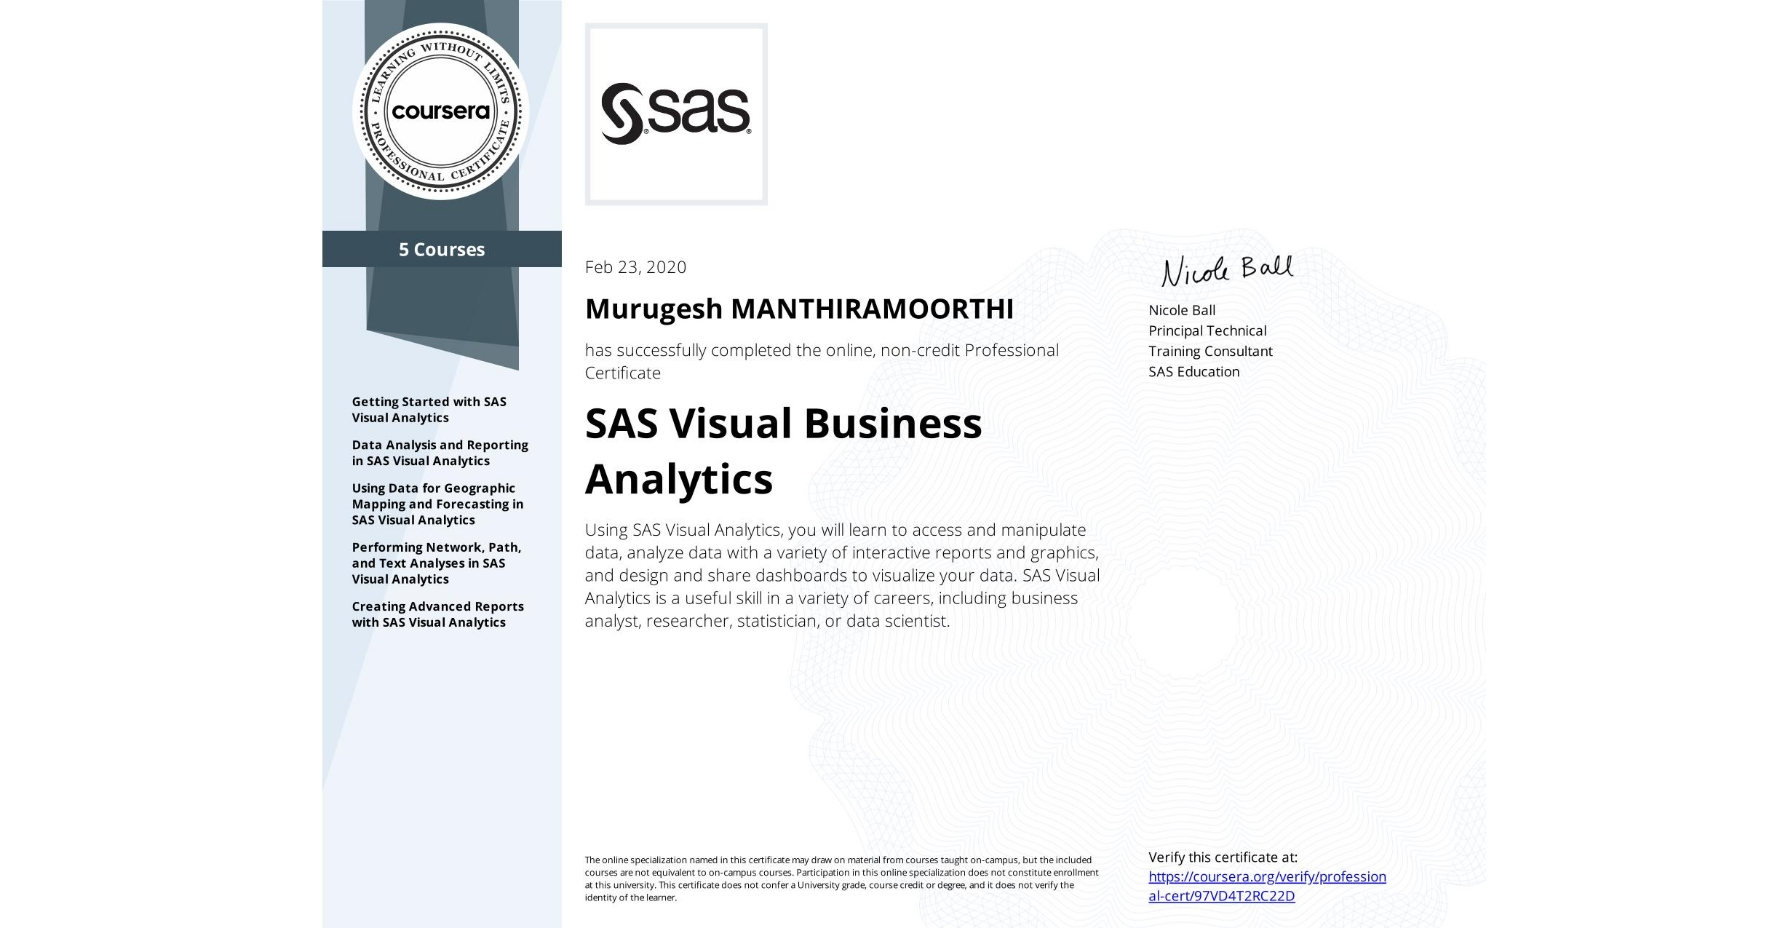 View certificate for Murugesh Manthiramoorthi, SAS Visual Business Analytics, offered through Coursera. Using SAS Visual Analytics, you will learn to access and manipulate data, analyze data with a variety of interactive reports and graphics, and design and share dashboards to visualize your data. SAS Visual Analytics is a useful skill in a variety of careers, including business analyst, researcher, statistician, or data scientist.